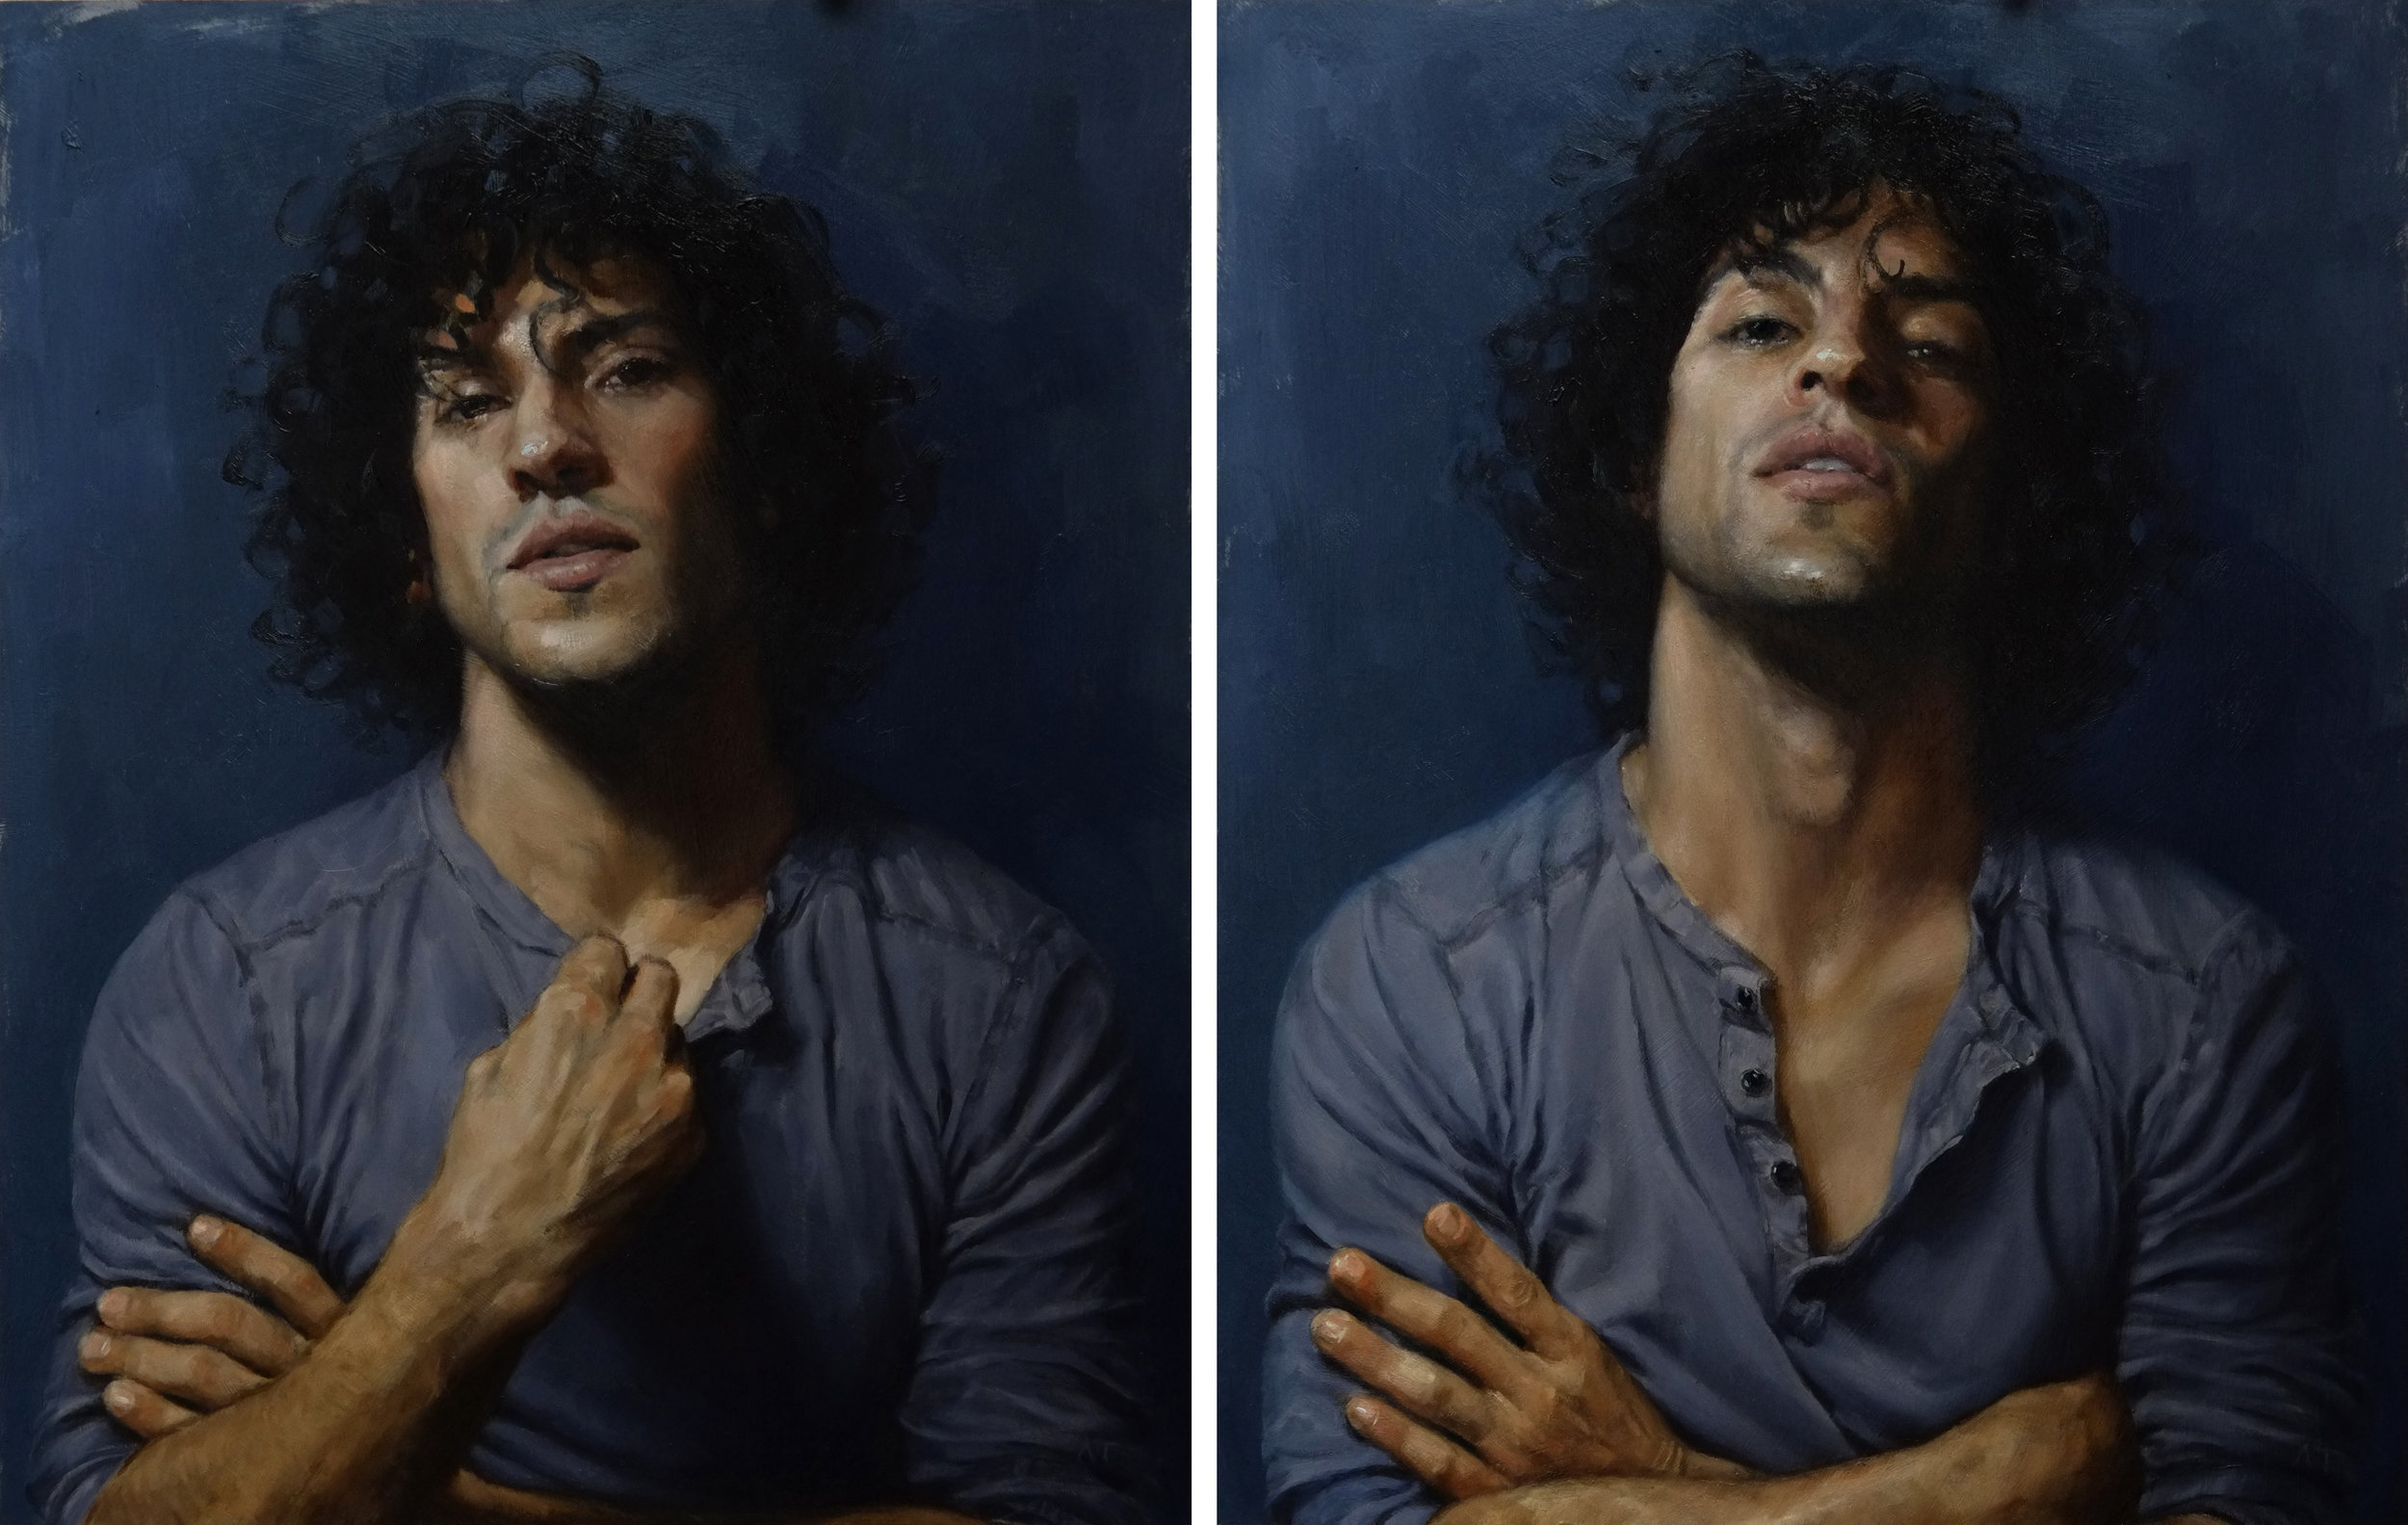 Alessandro Tomassetti  |  What She Said 1 & 2  | Oil on Aluminum | 14 x 11 inches or 35 ½ x 28 cm each